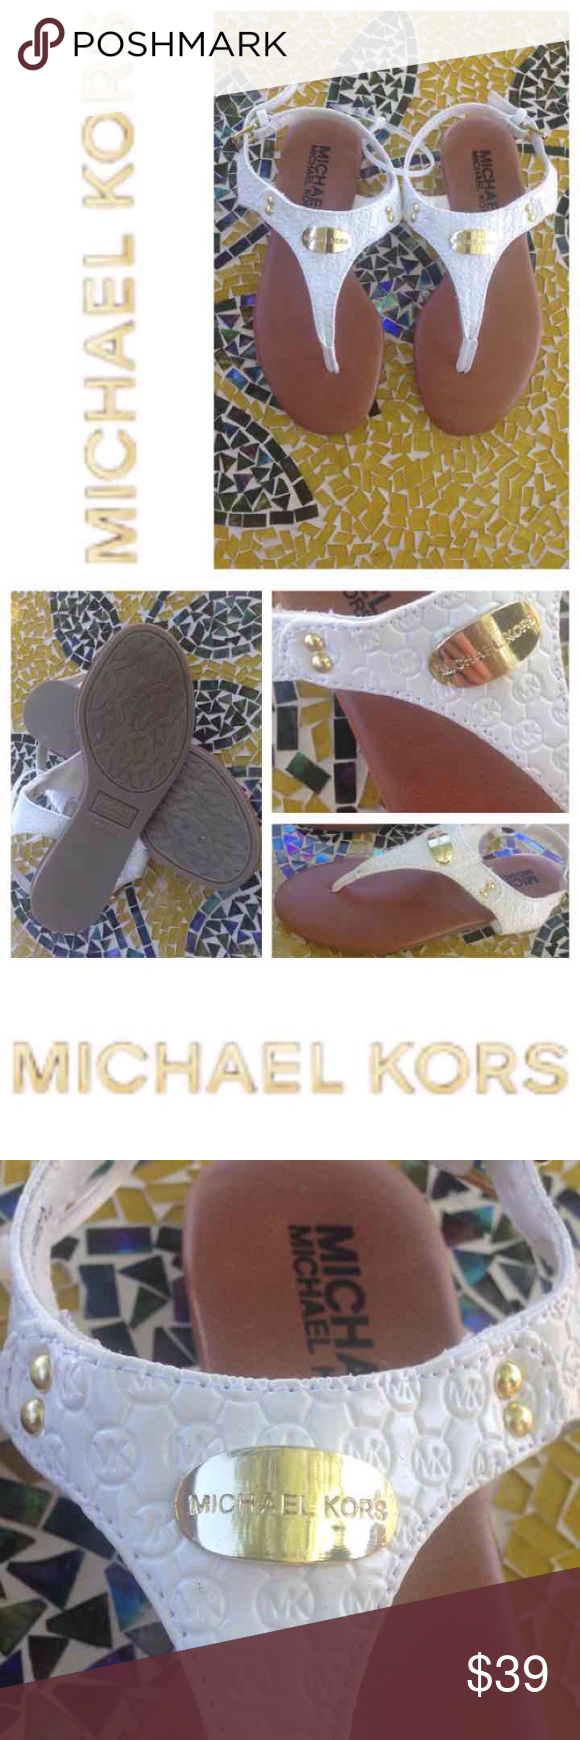 """NEW!  MICHAEL Michael Kors girl's thong sandals Brand new, super cute, ultra-functional MICHAEL by Michael Kors white thong sandals are super comfy & just in time for the warmer weather!  Pair these beauties will all her outfits & she's ready to go!  Featuring a signature logo plate & gold hardware, these pretty sandals retail at $59 but available right now for a great price!  Size is 1 in girls.  No trades or """"lowest"""" please. MICHAEL Michael Kors Shoes Sandals & Flip Flops"""